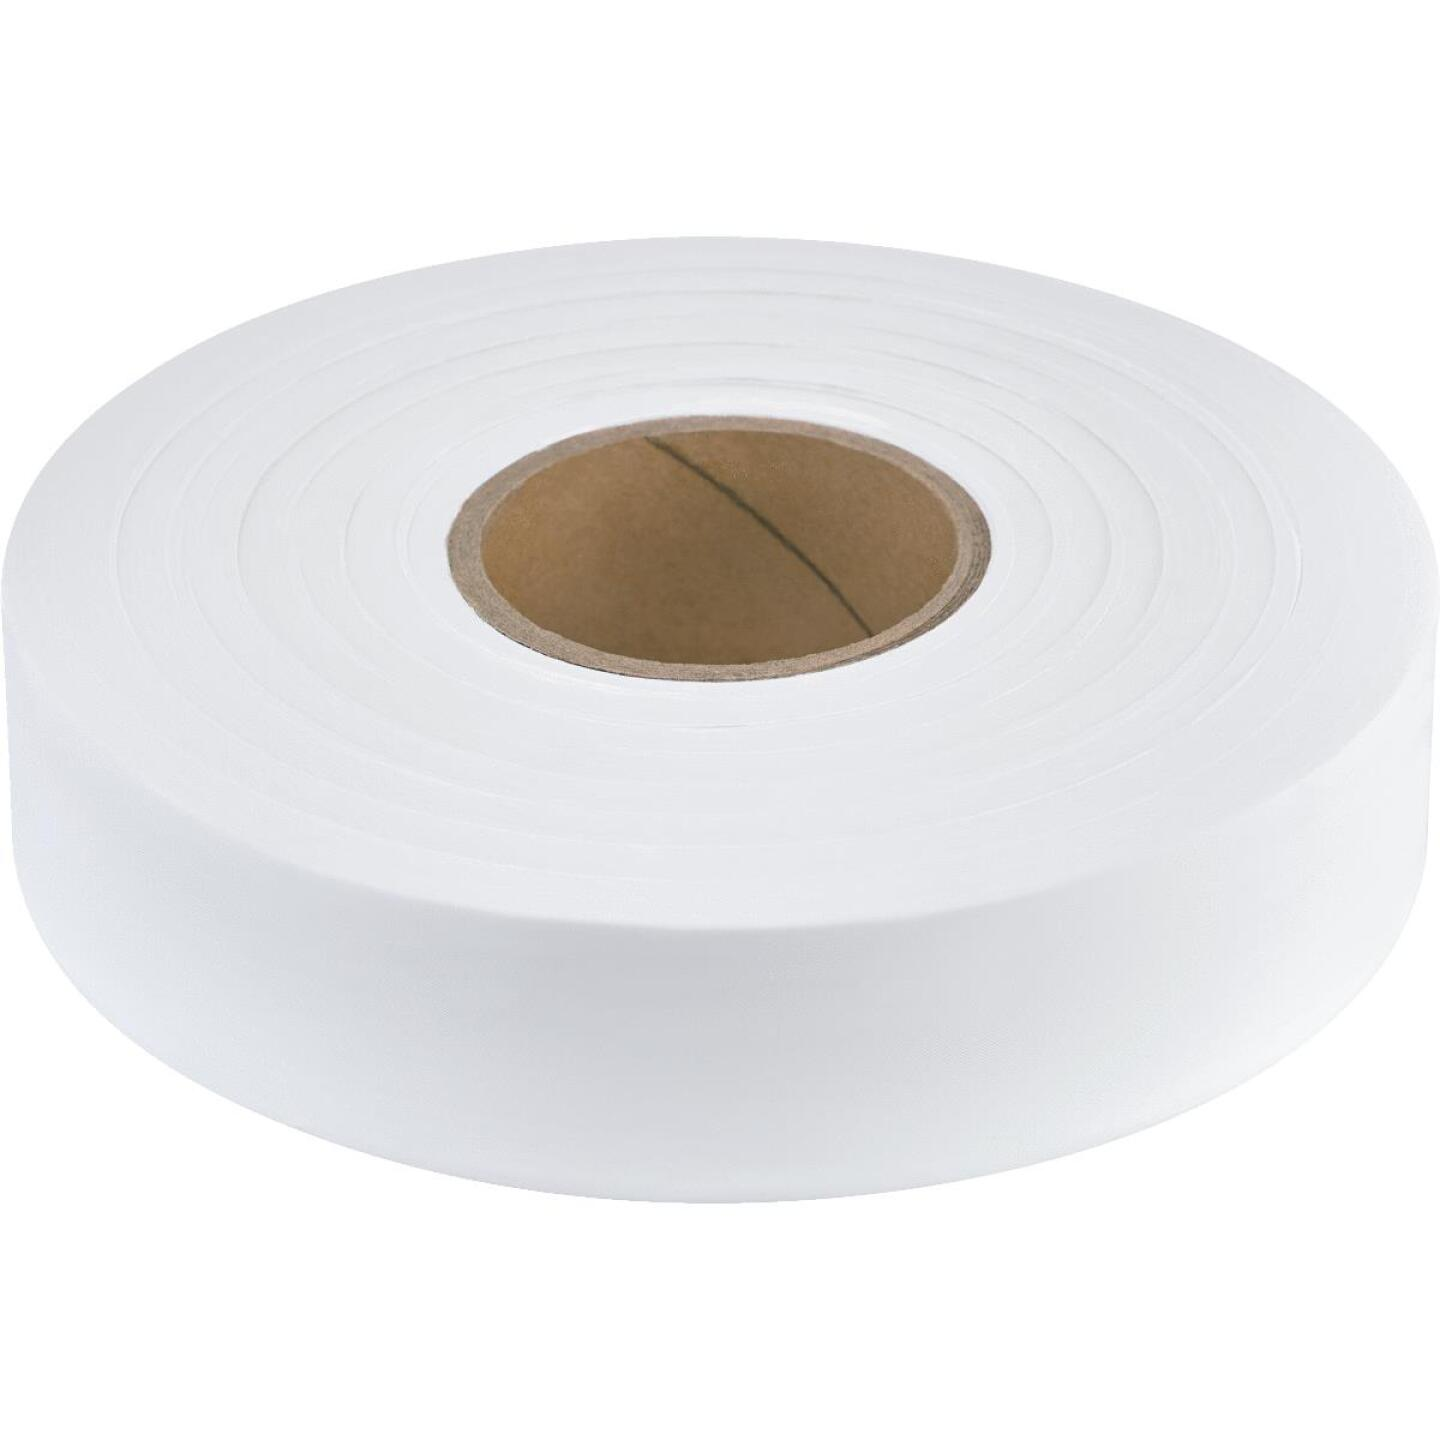 Empire 600 Ft. x 1 In. White Flagging Tape Image 1